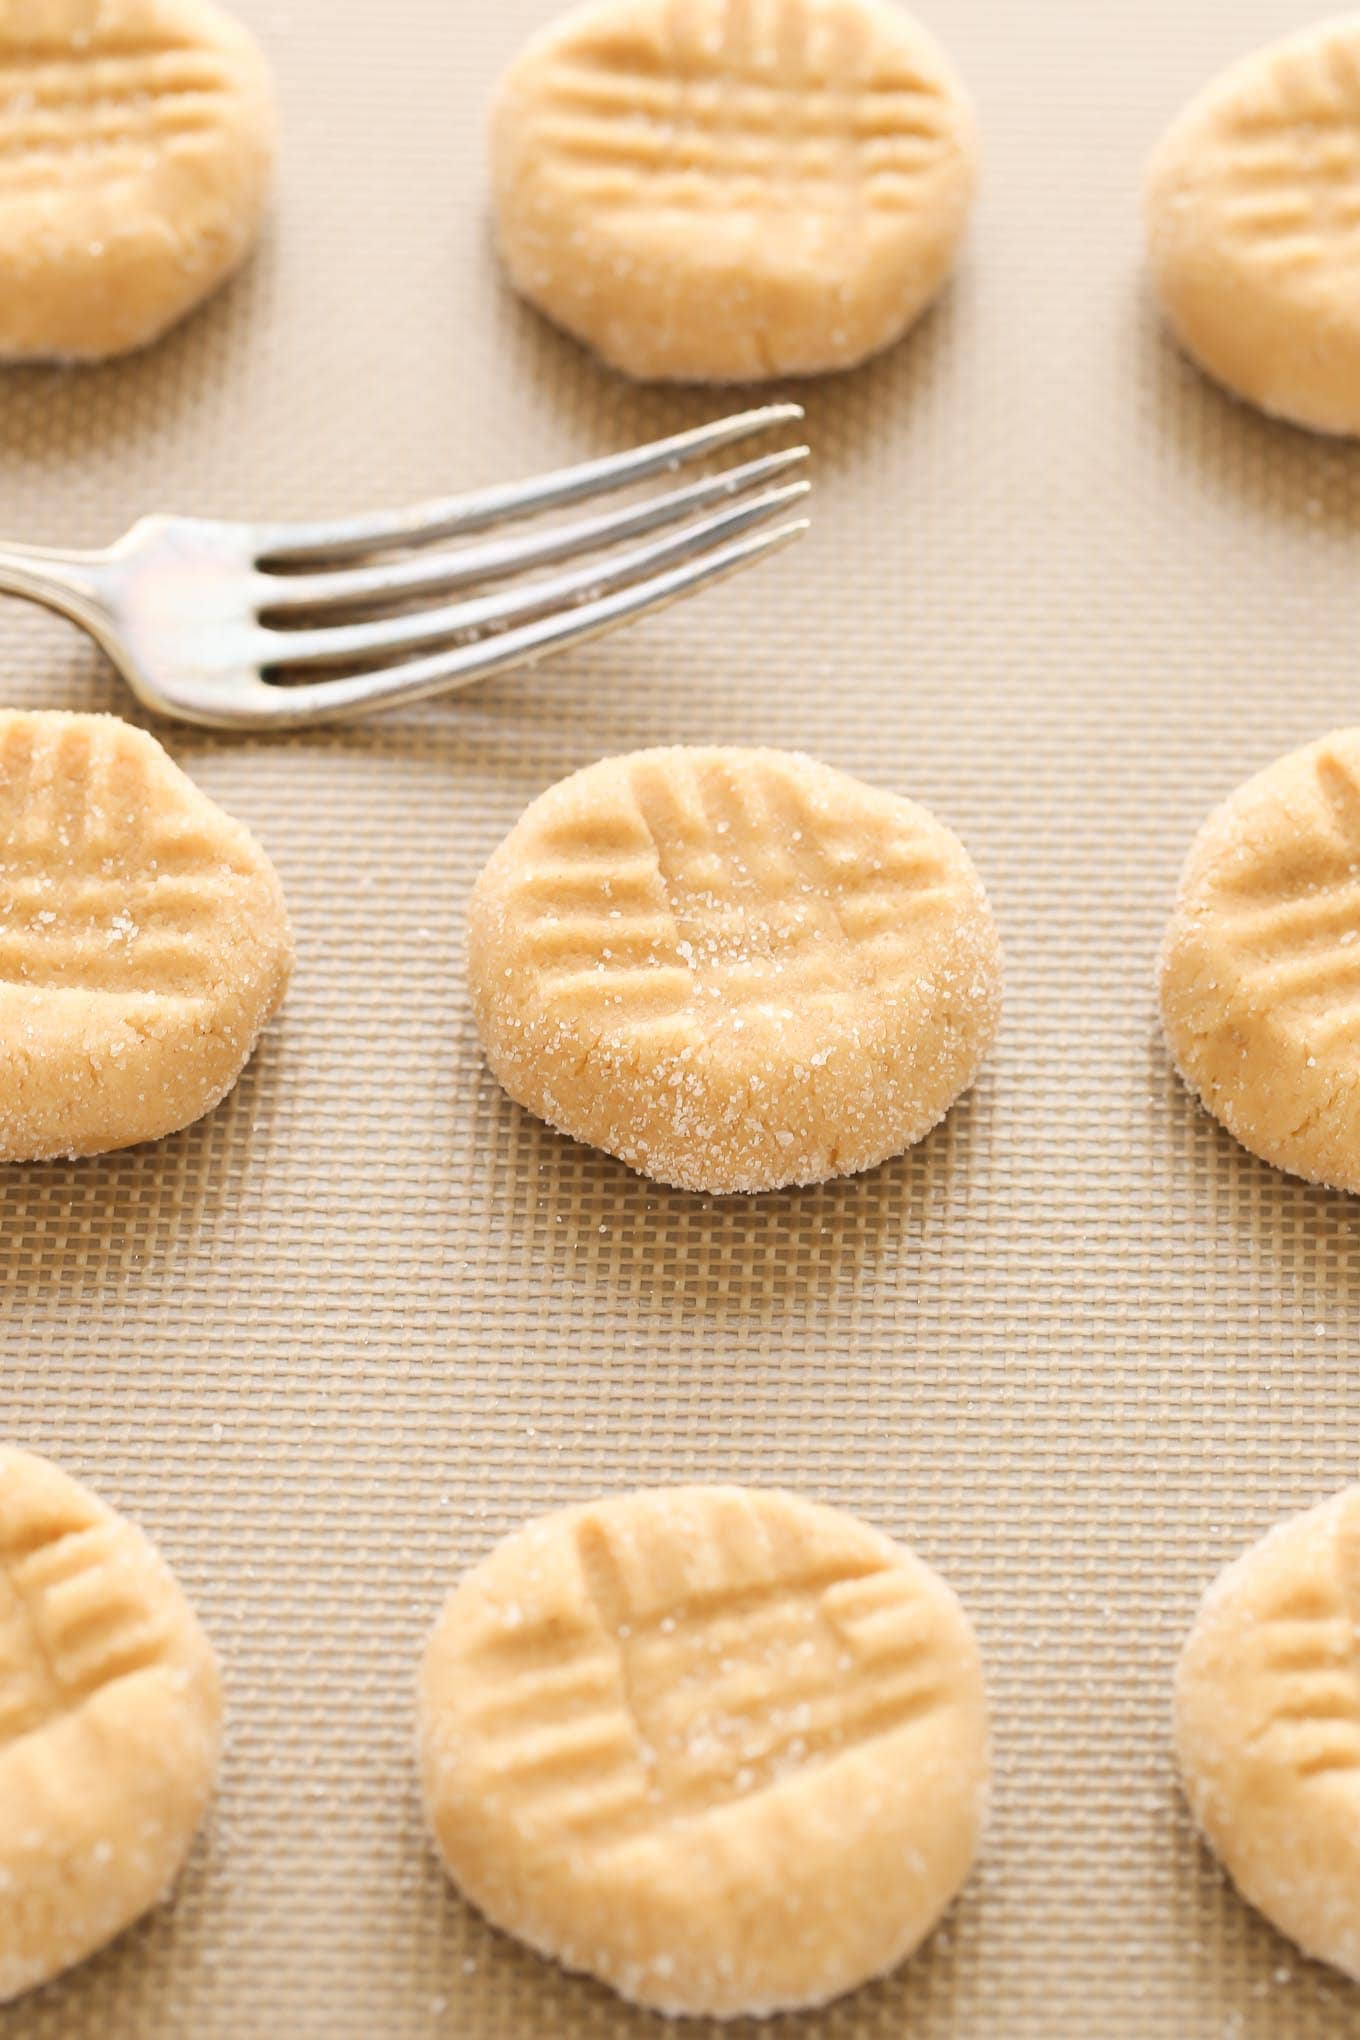 How to make peanut butter cookies without baking soda